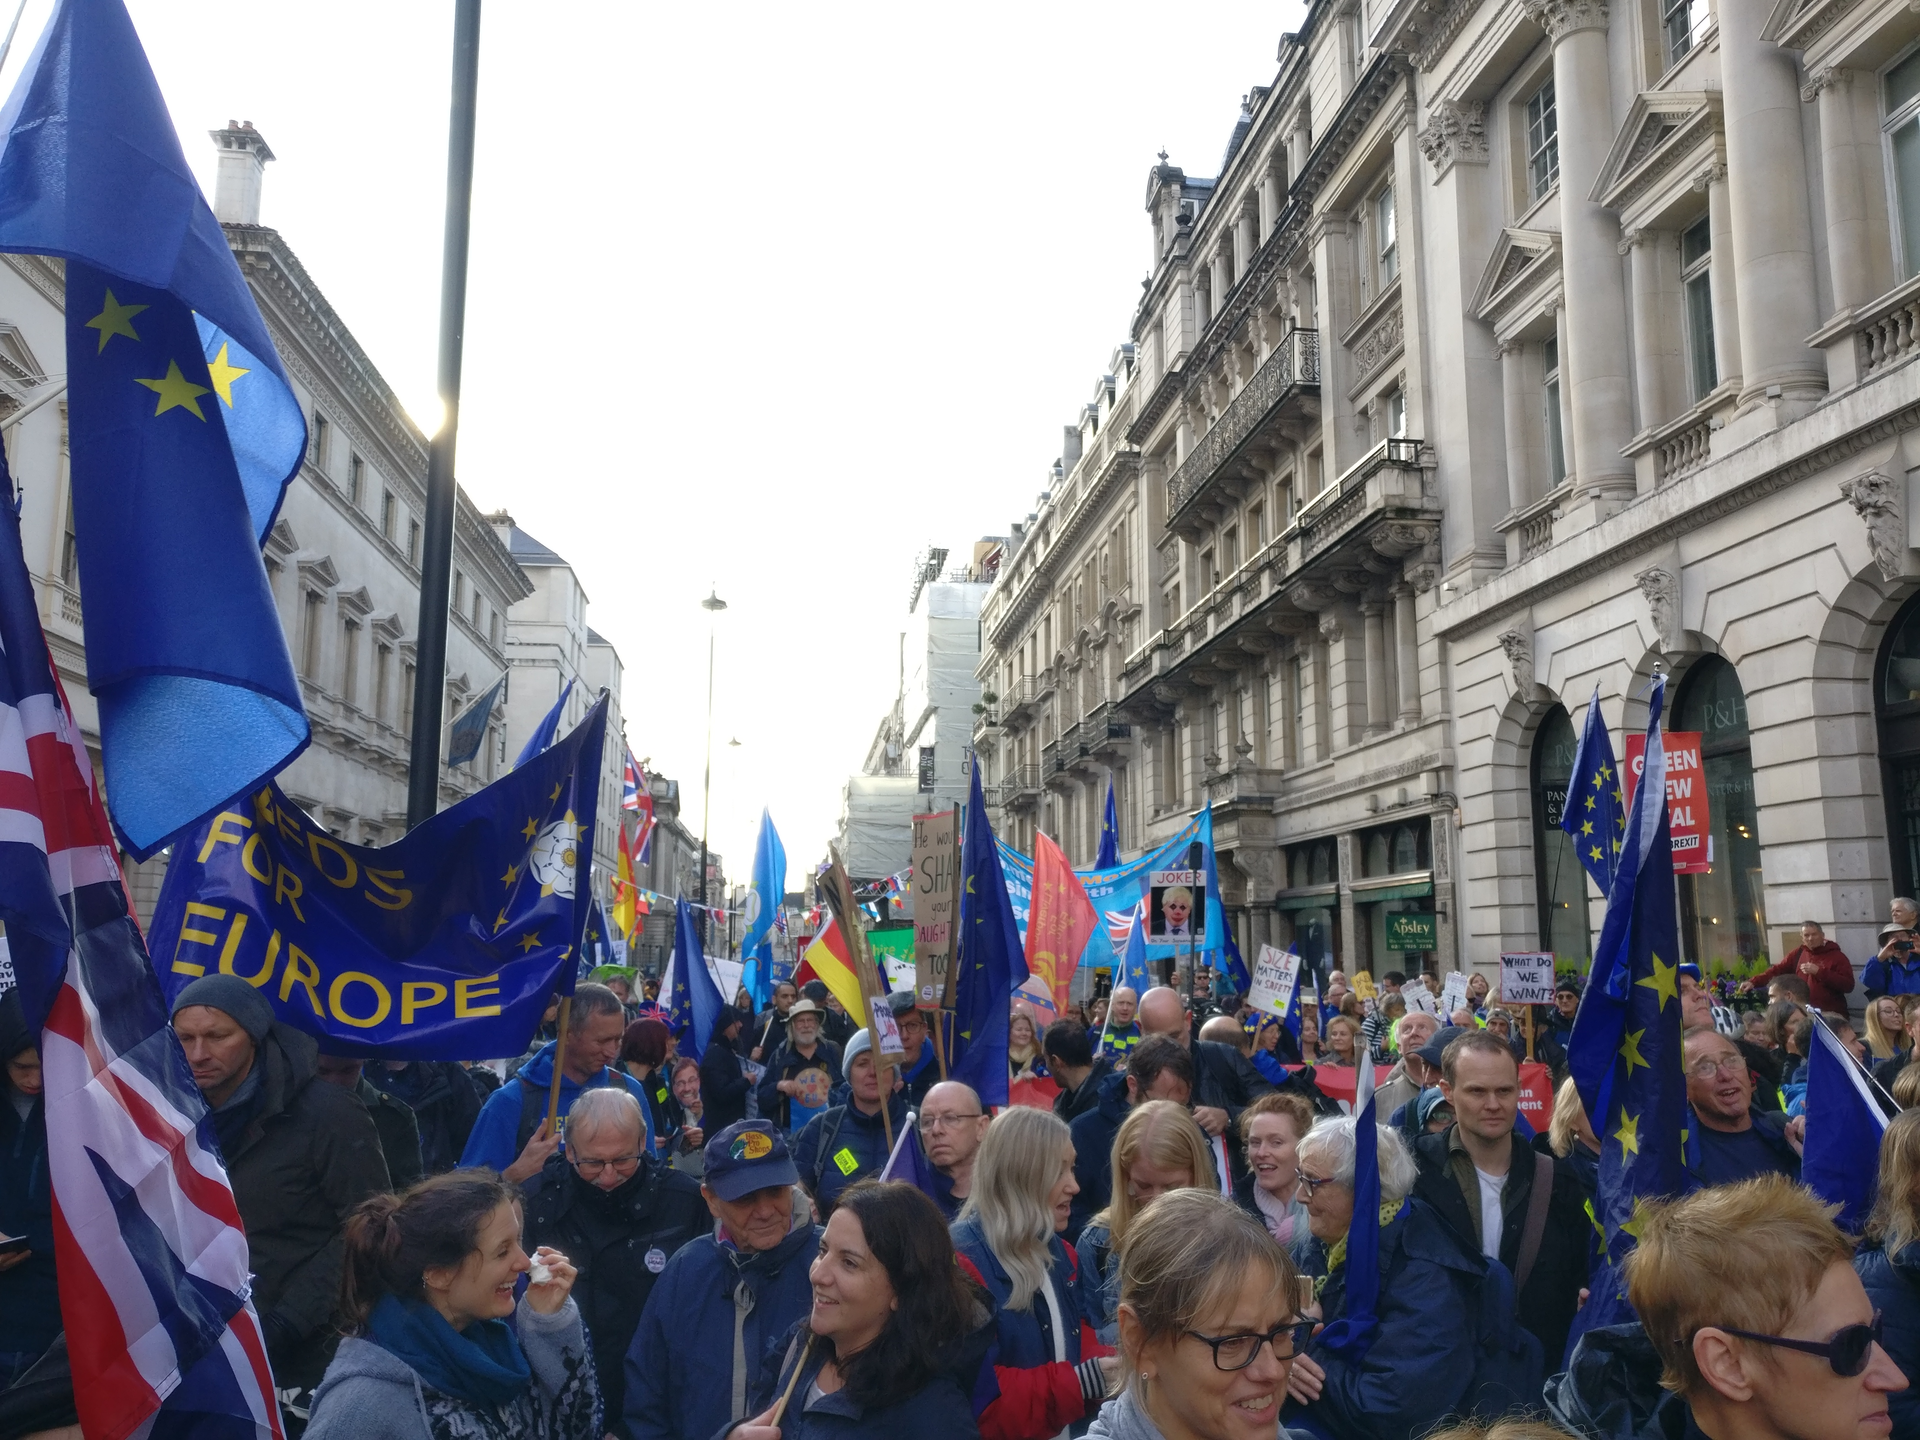 March for a Final Say Oct 19